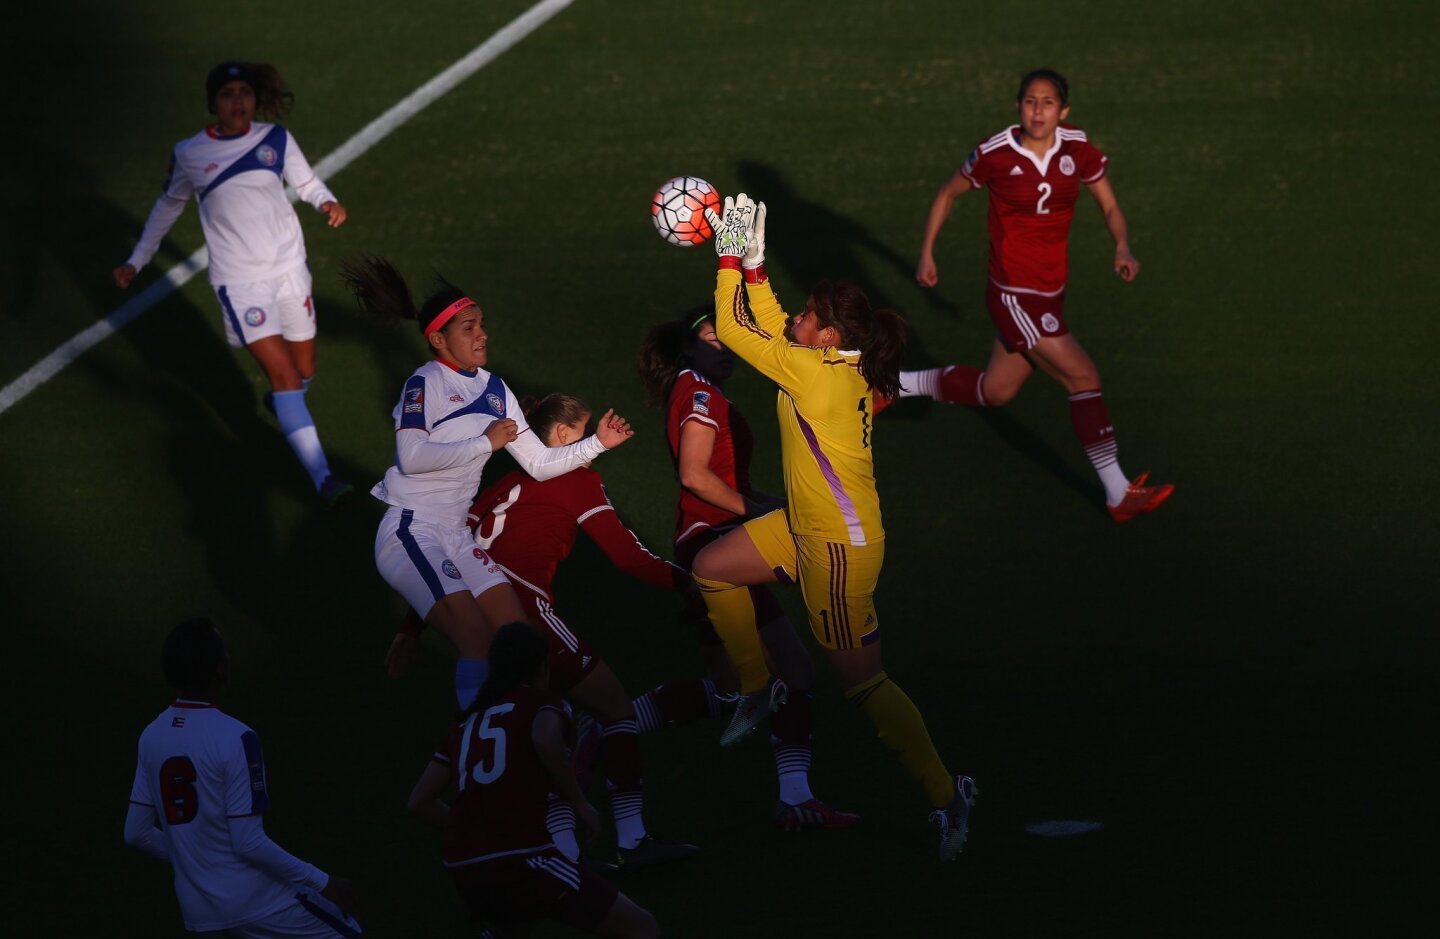 FRISCO, TX - FEBRUARY 10: Cecilia Santiago #1 of Mexico makes a save in front of Karina Socarras #9 of Puerto Rico during 2016 CONCACAF Women's Olympic Qualifying at Toyota Stadium on February 10, 2016 in Frisco, Texas. (Photo by Ronald Martinez/Getty Images) ** OUTS - ELSENT, FPG, CM - OUTS * NM, PH, VA if sourced by CT, LA or MoD **